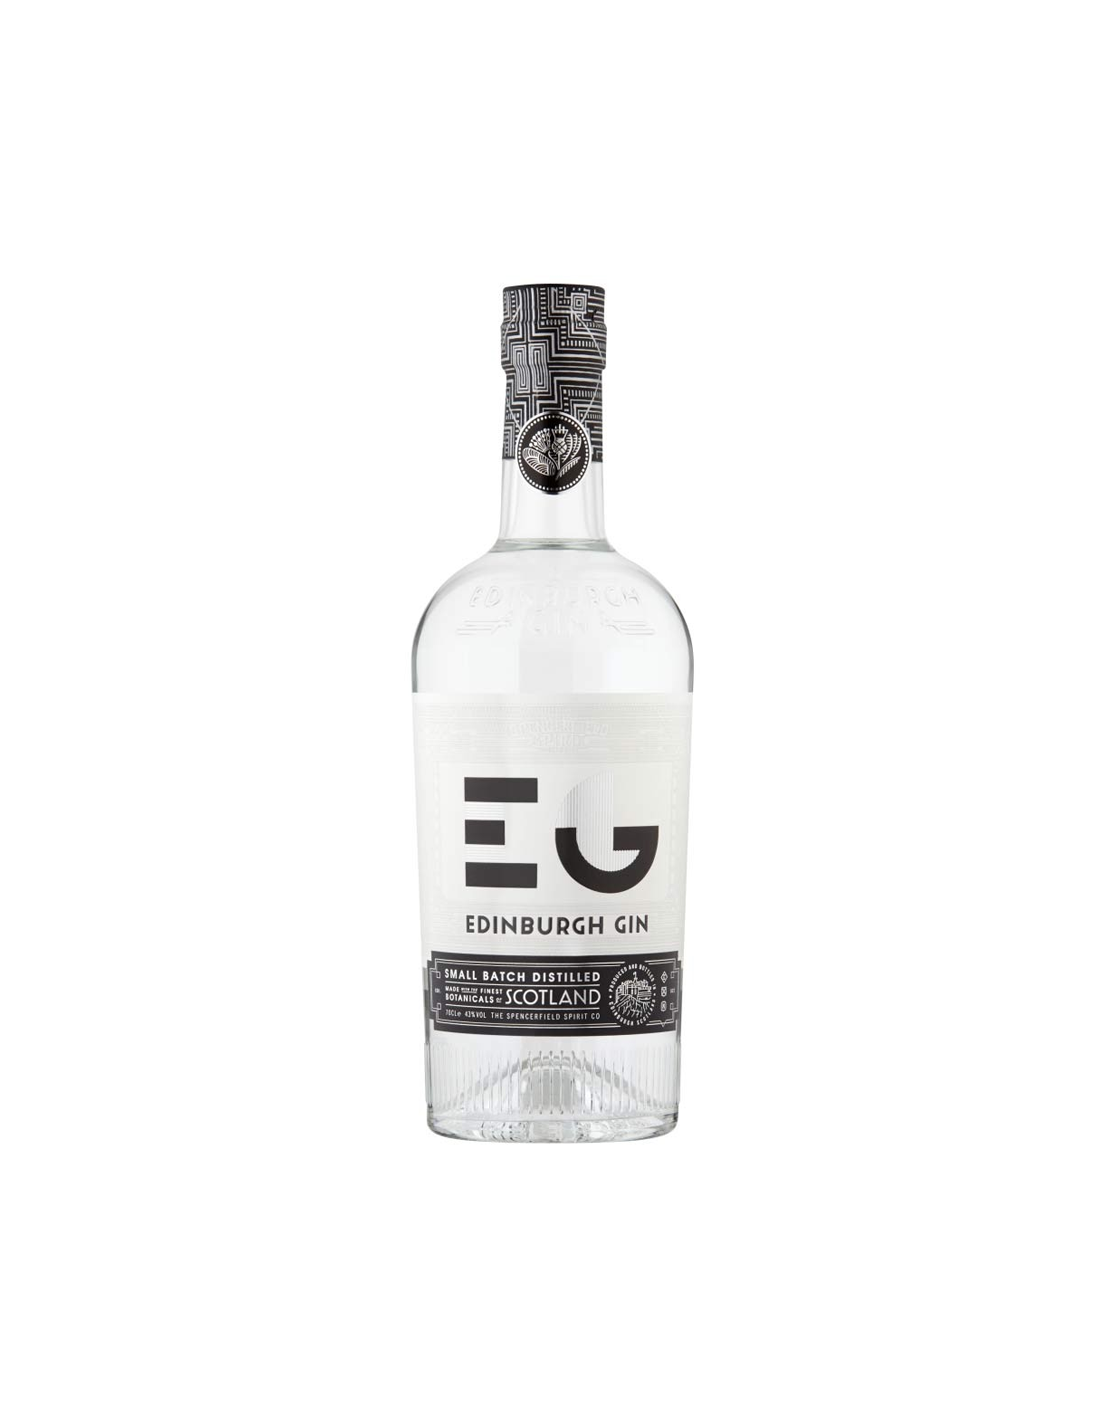 Gin Edinburgh 43% alc., 0.7L, Scotia